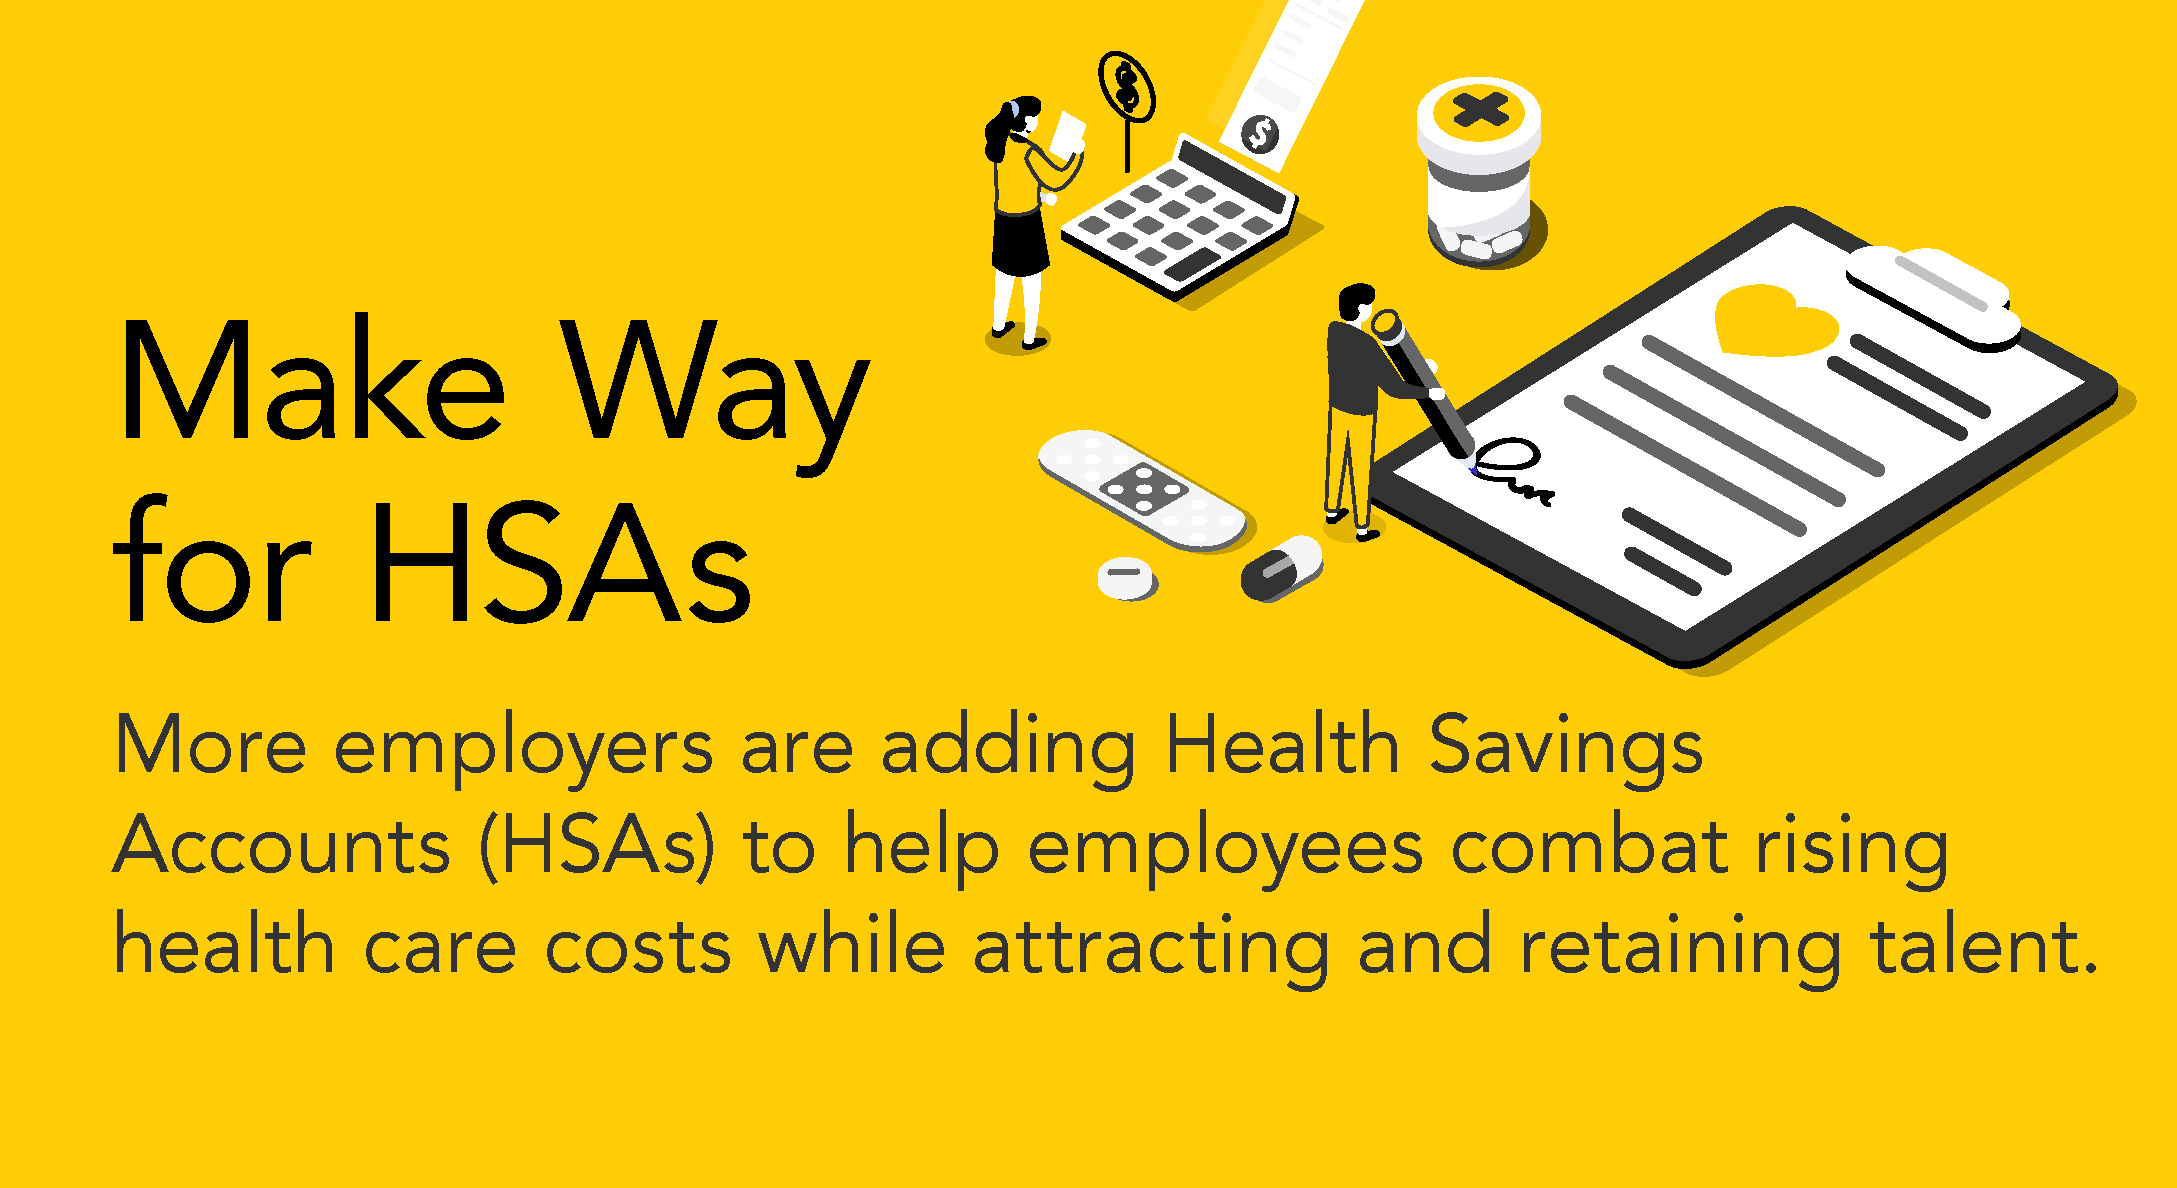 make way for HSAs